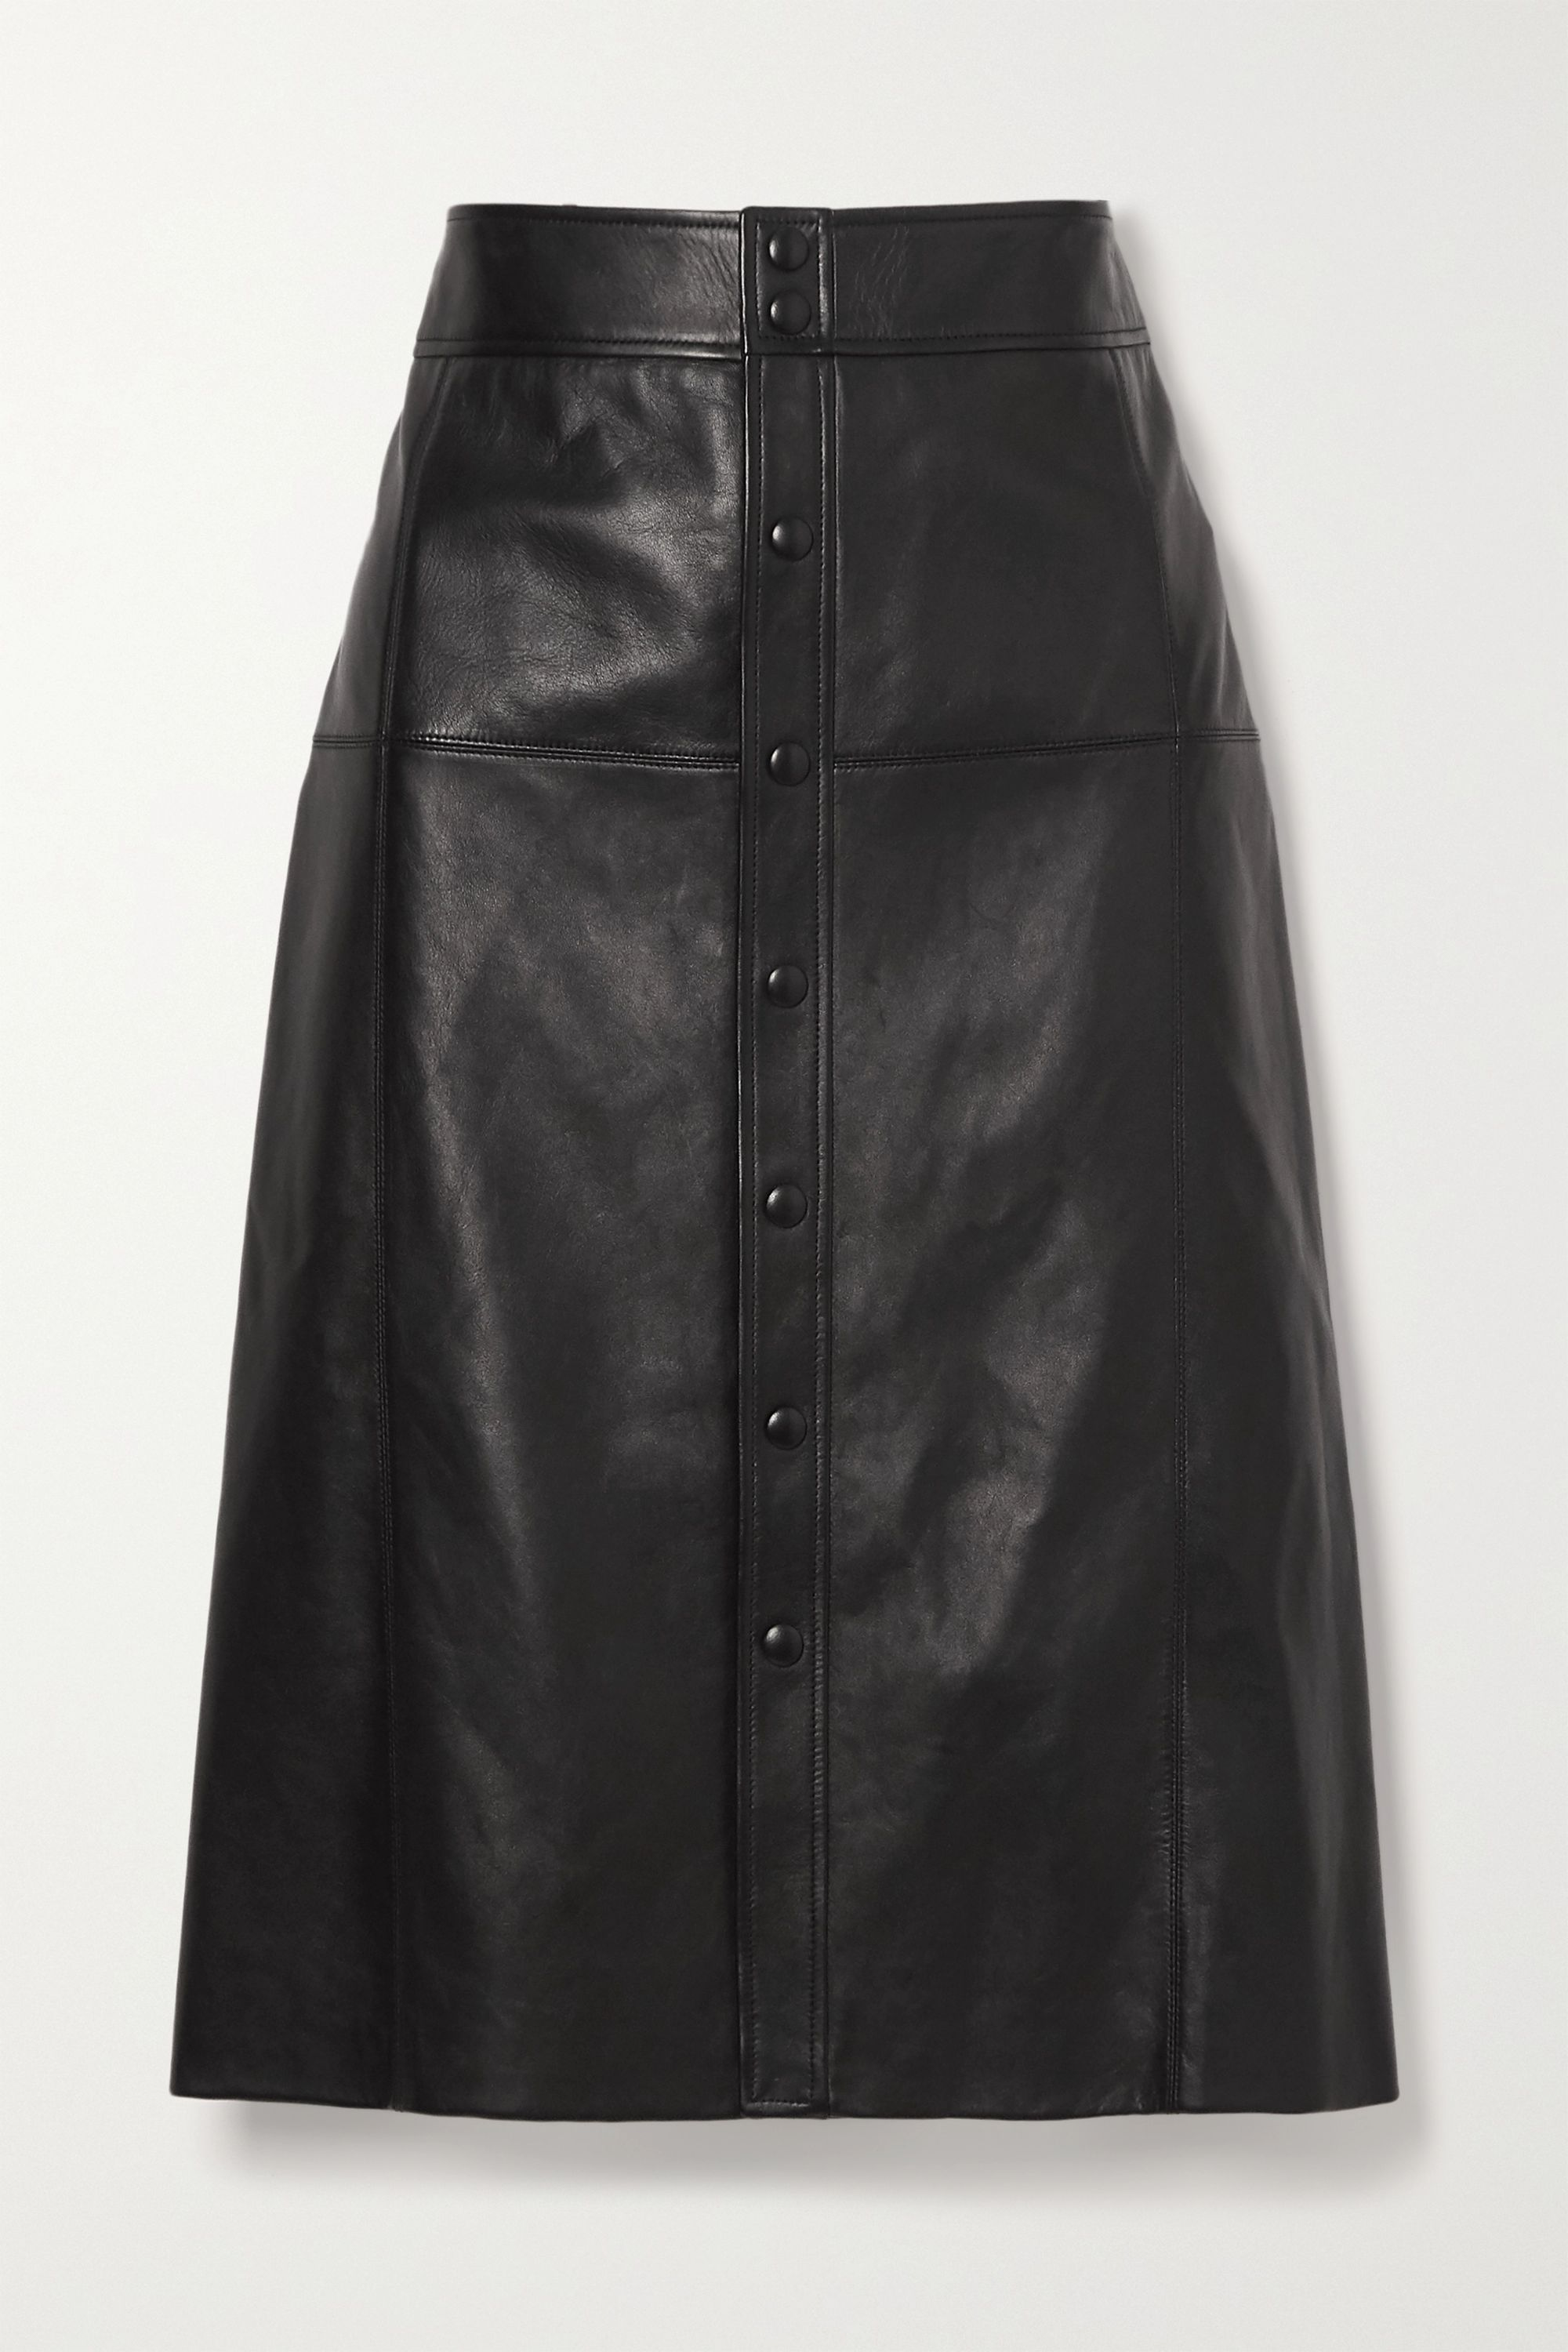 SAINT LAURENT Leather skirt